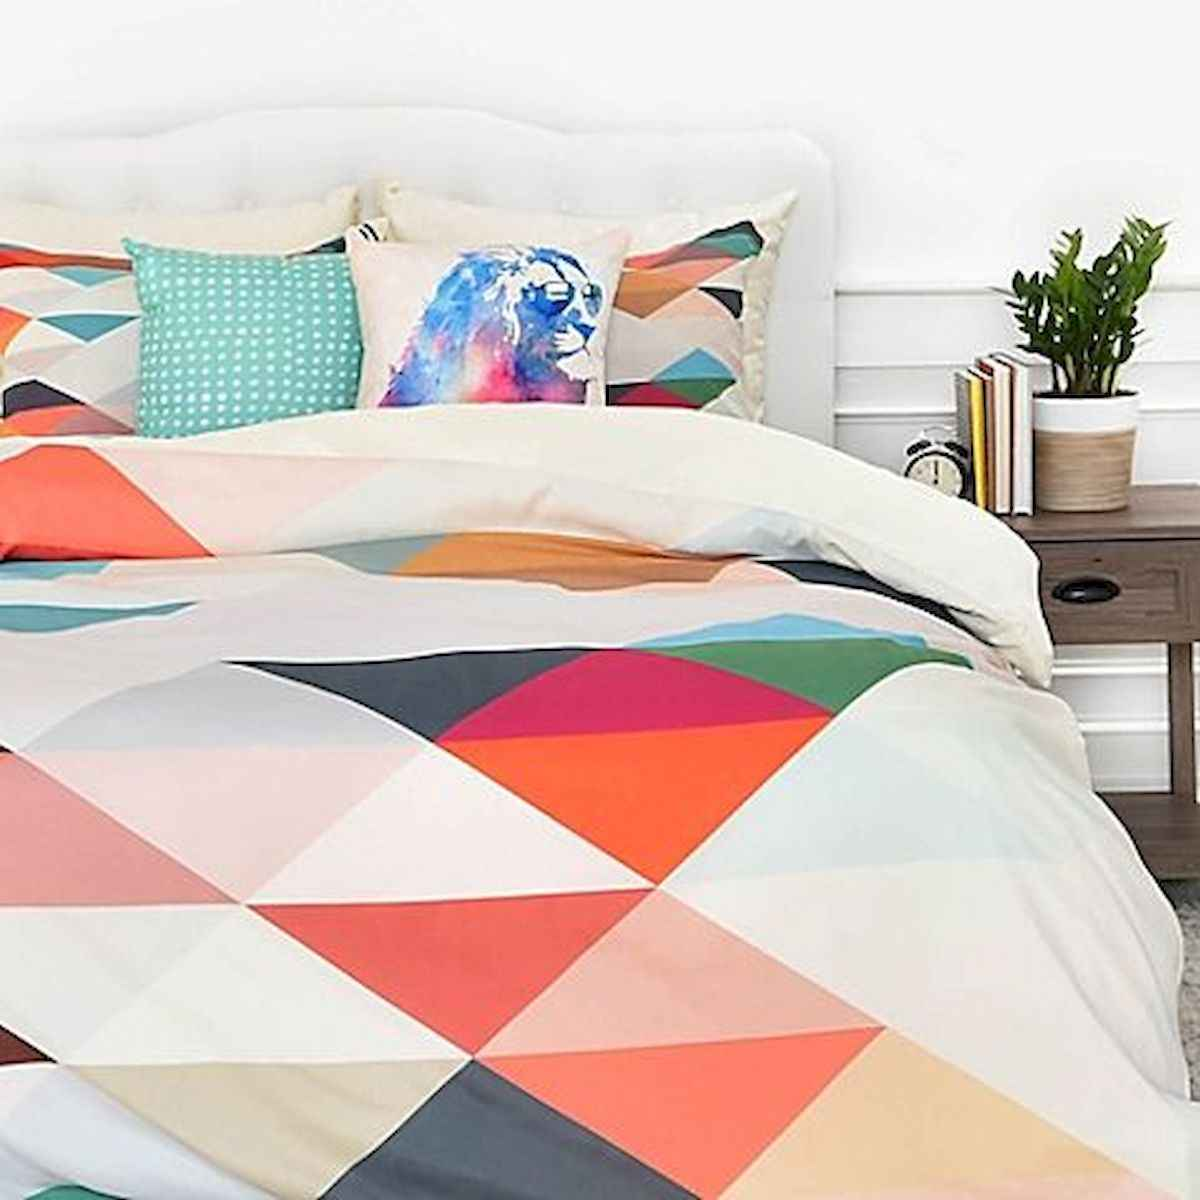 70+ Amazing Colorful Bedroom Decor Ideas And Remodel for Summer Project (10)